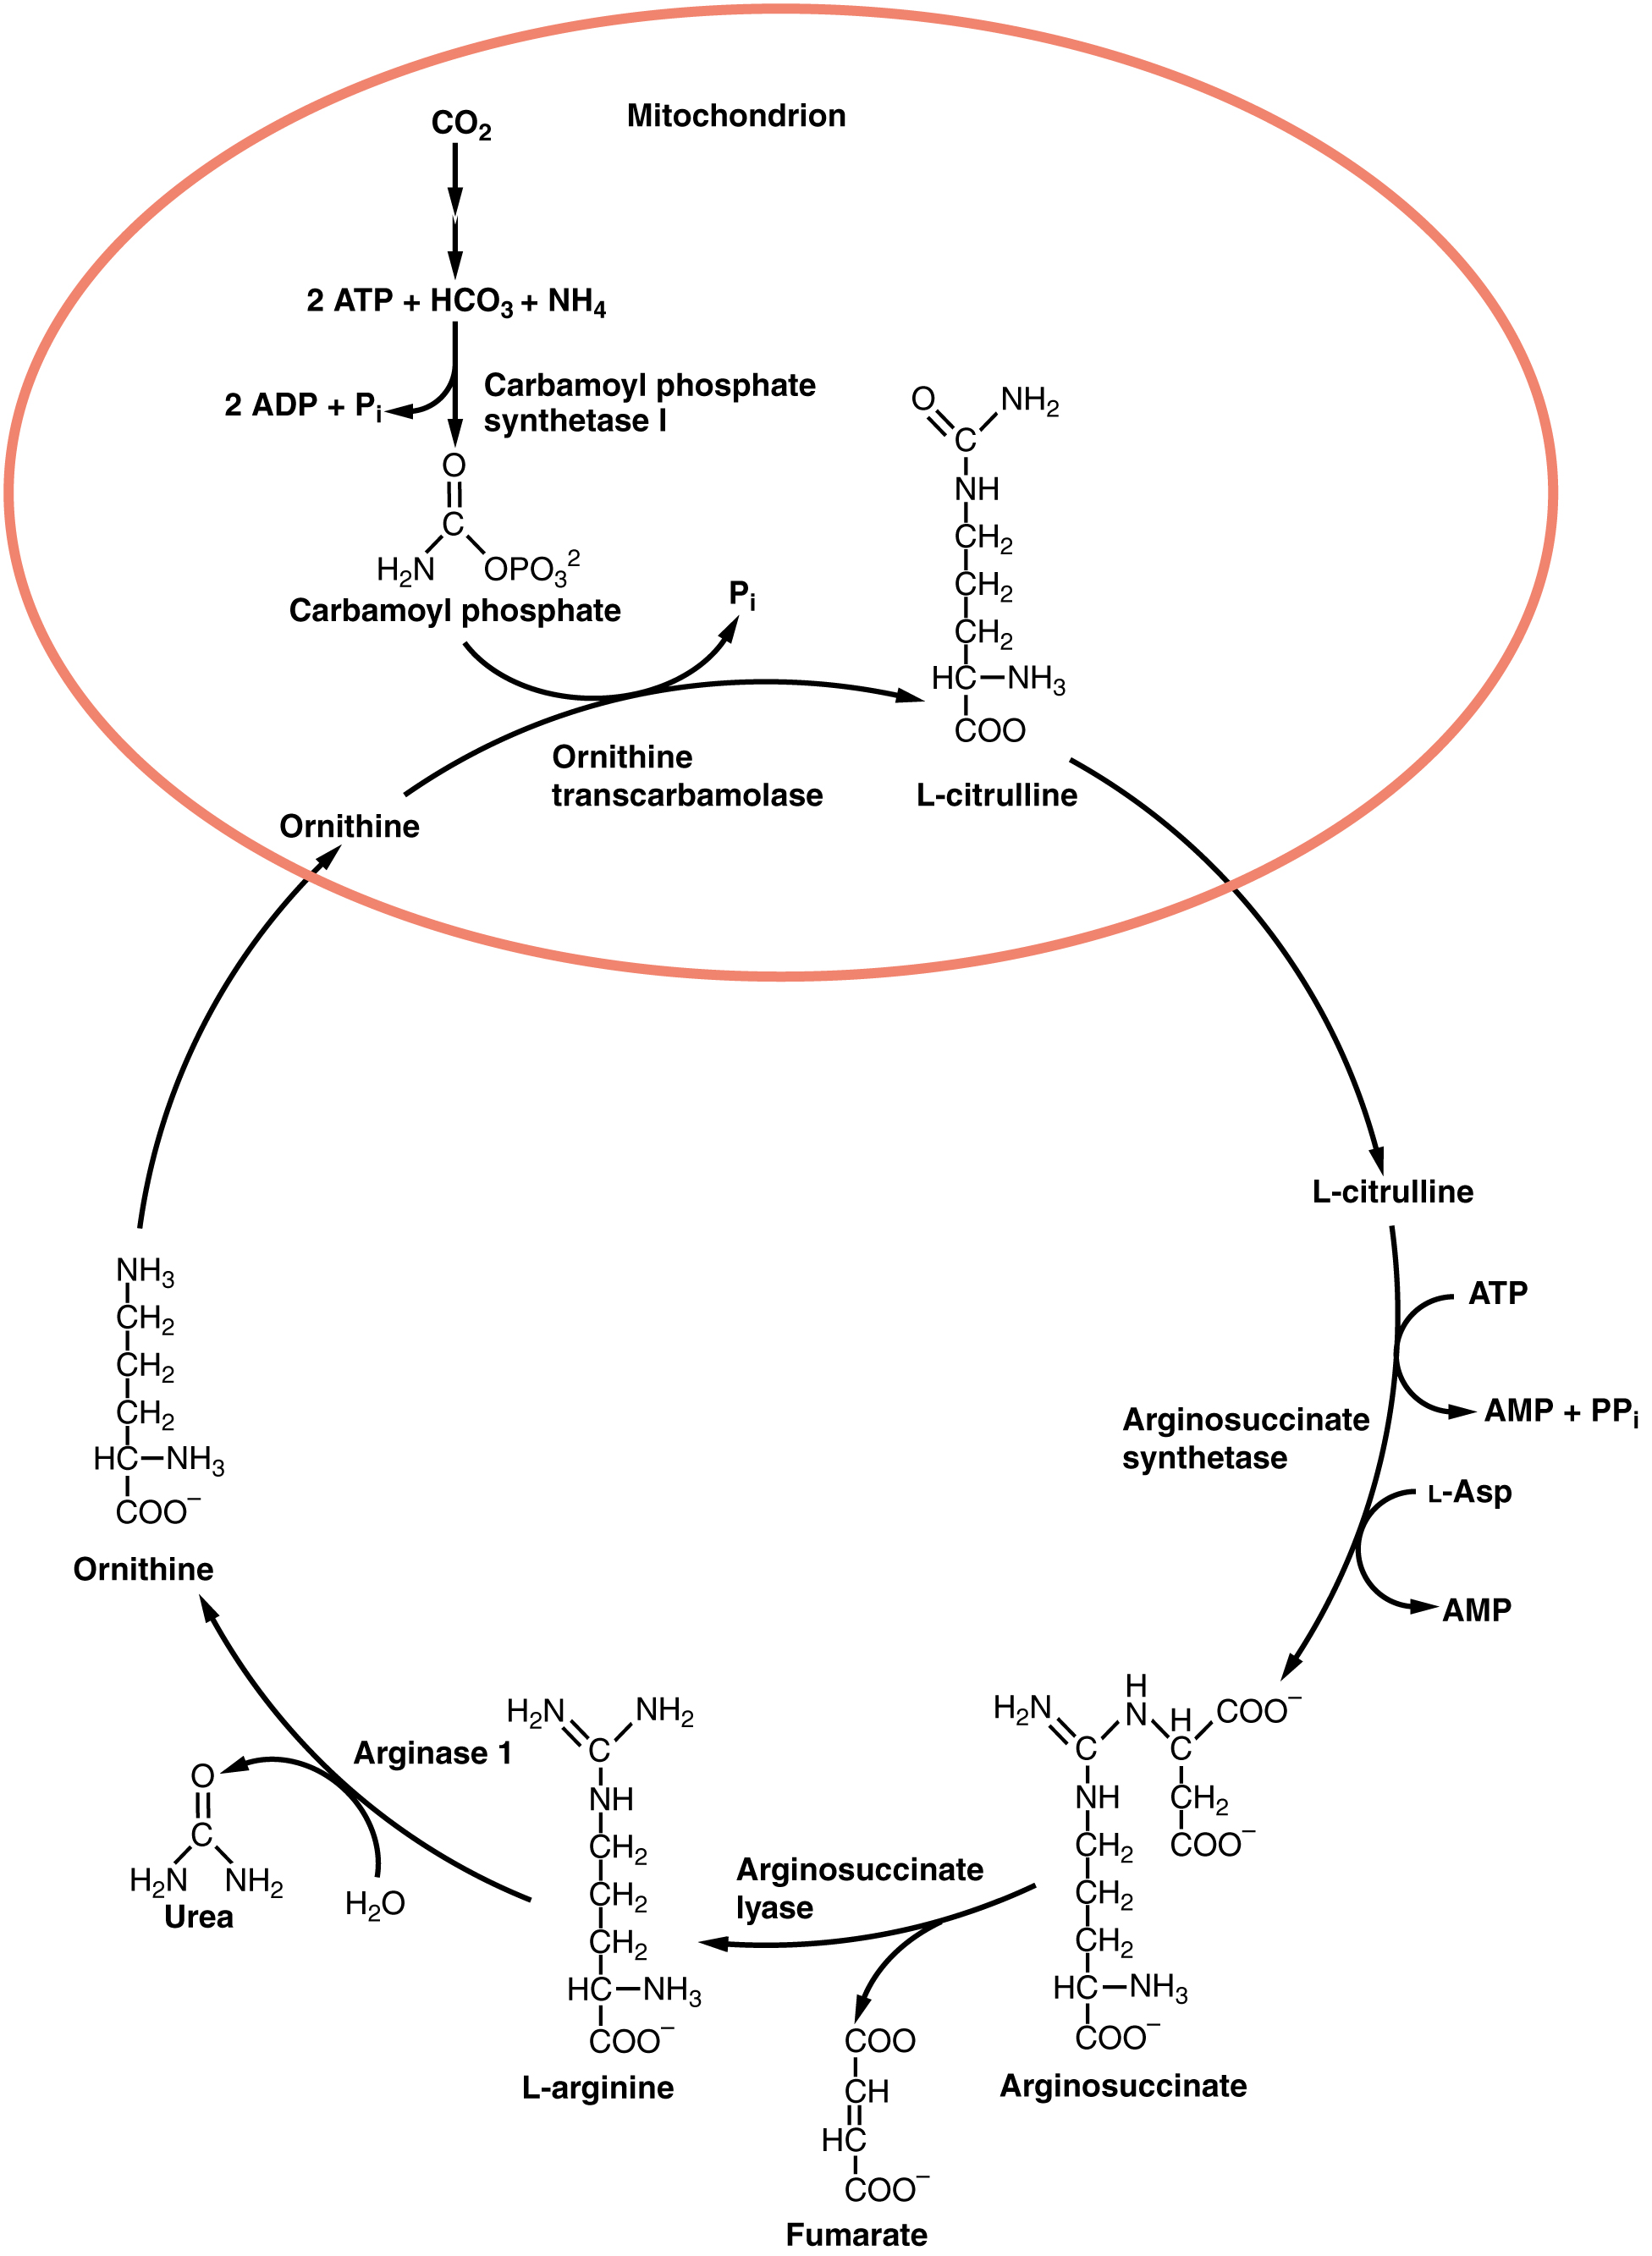 This image shows the reactions of the urea cycle and the organelles in which they take place.